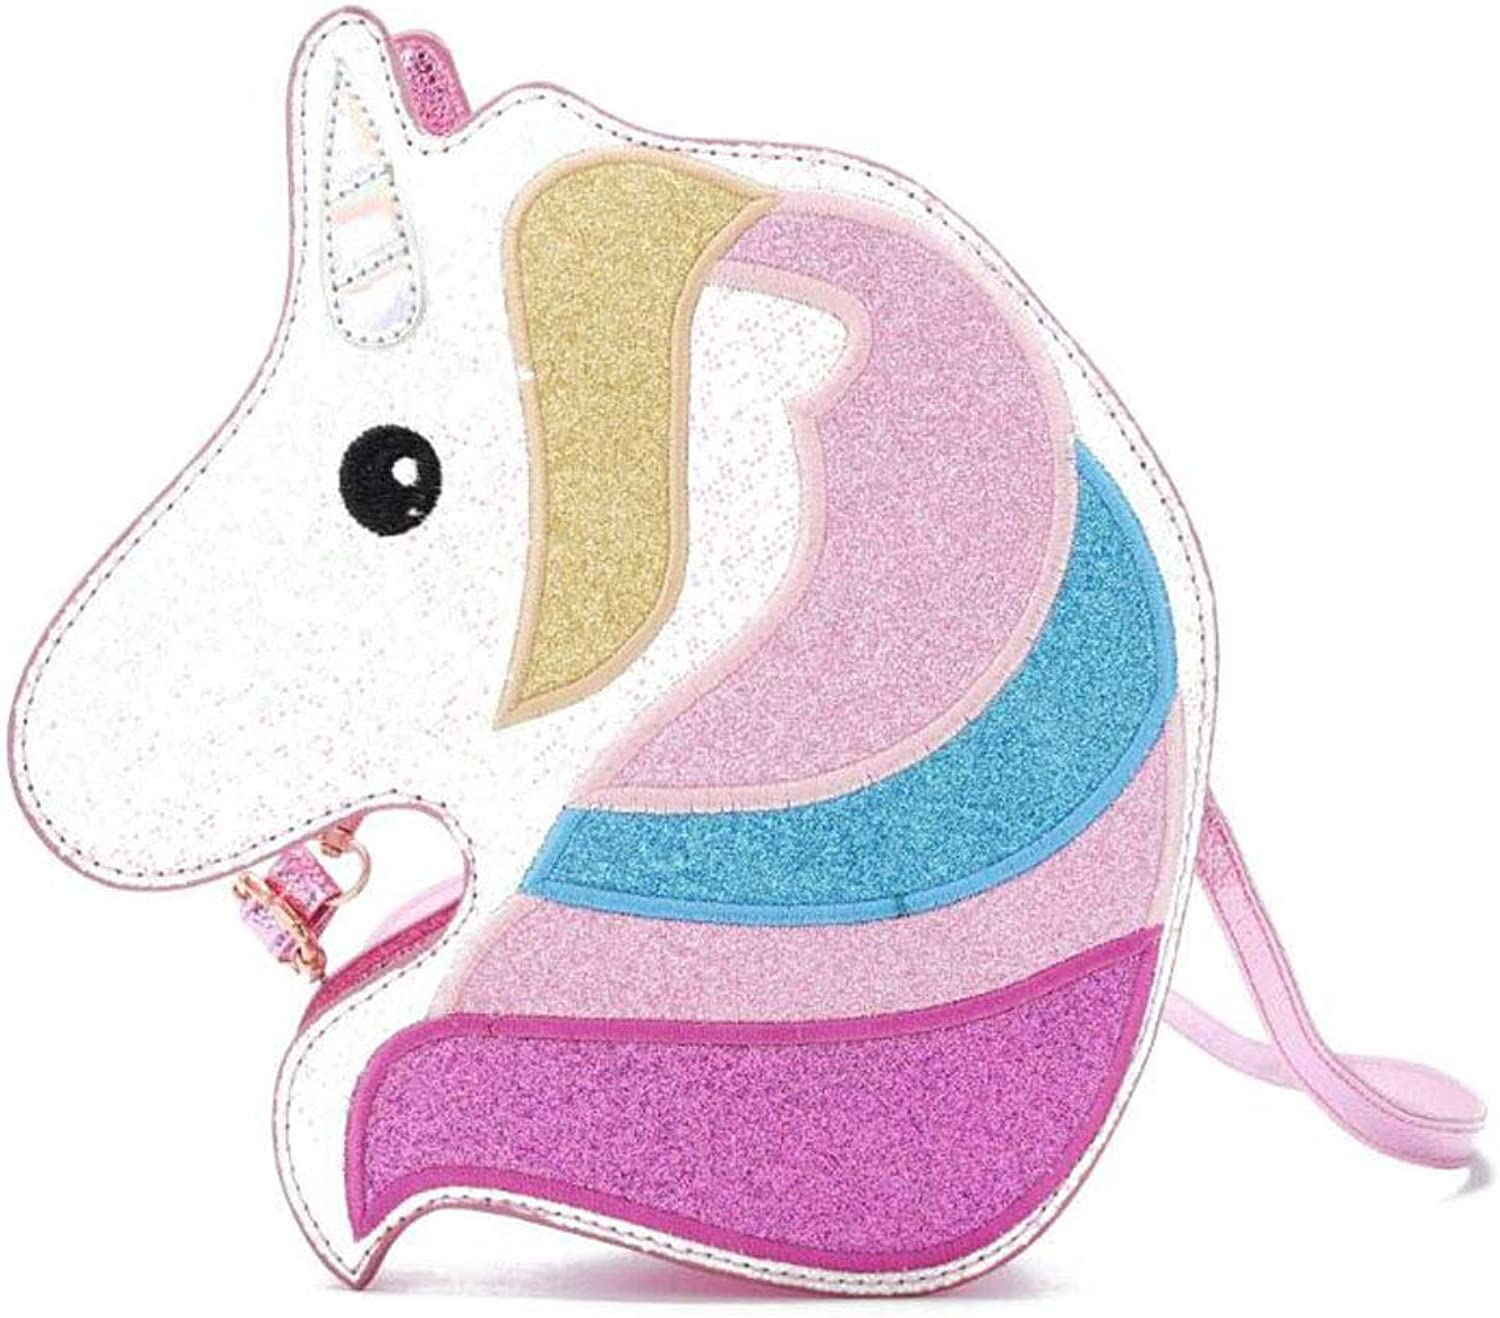 Holographic Unicorn Crossbody Purse Bag for Teens Girls Women Novelty Glitter Handbag